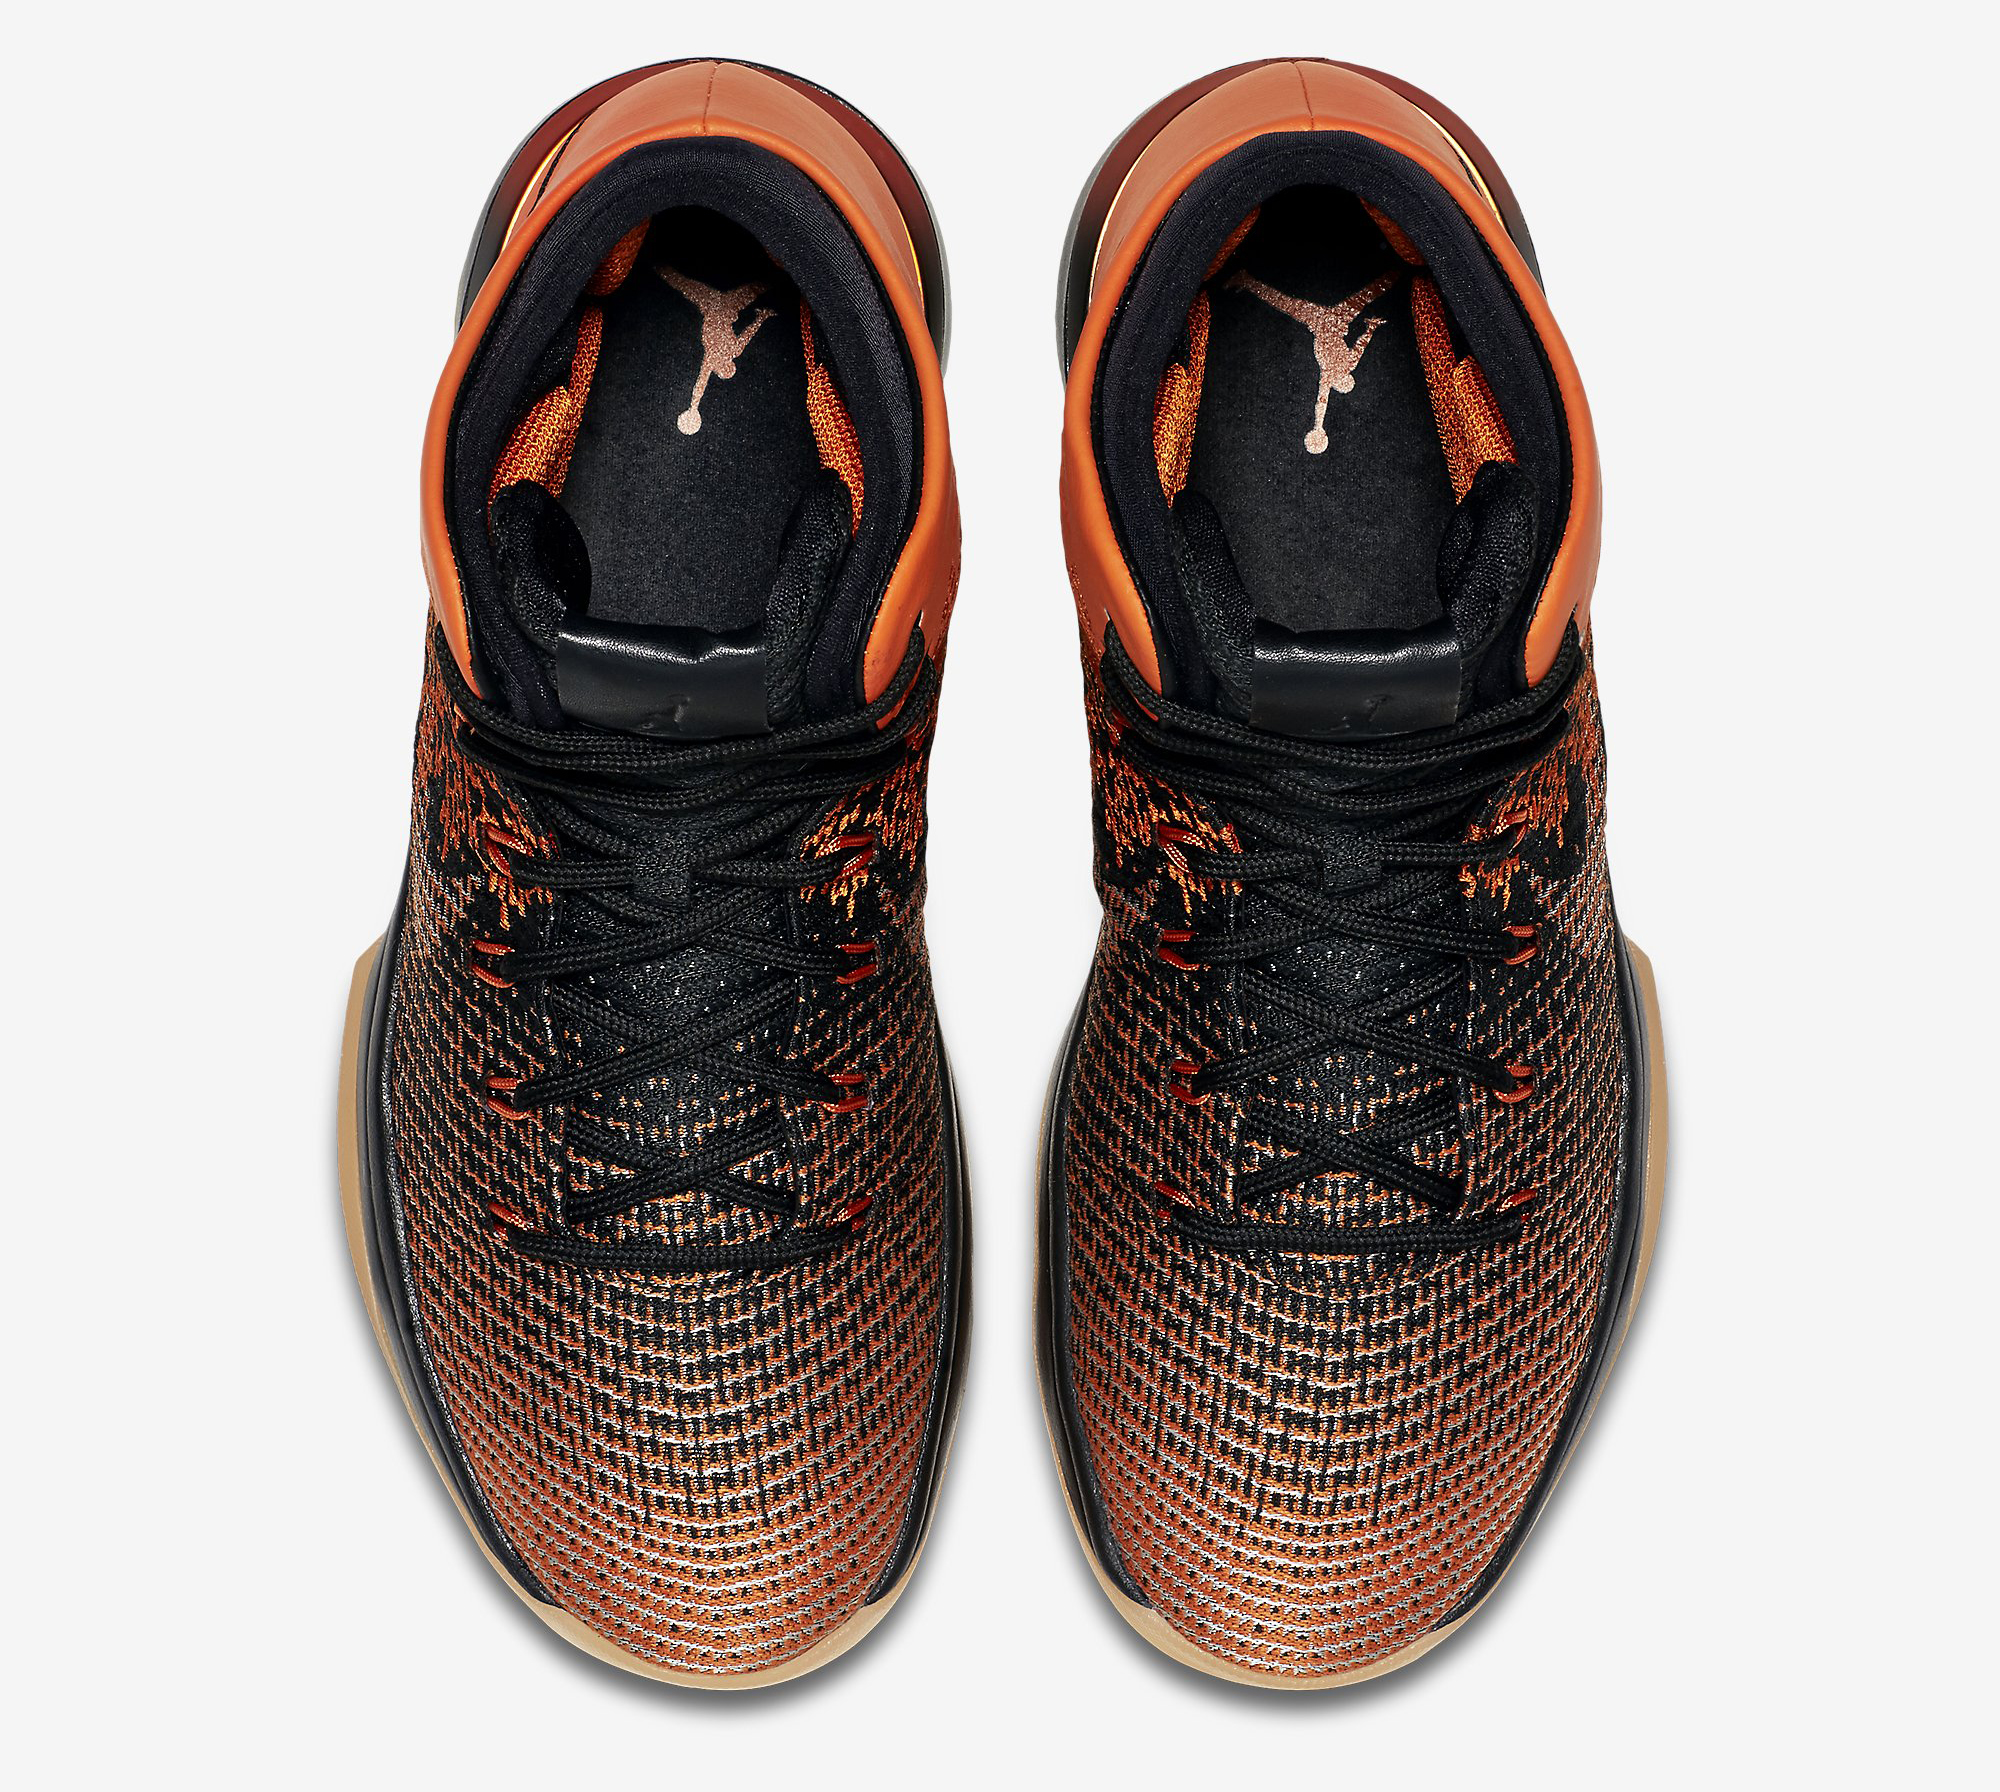 Shattered Backboard Air Jordan 31 845037-021 Top